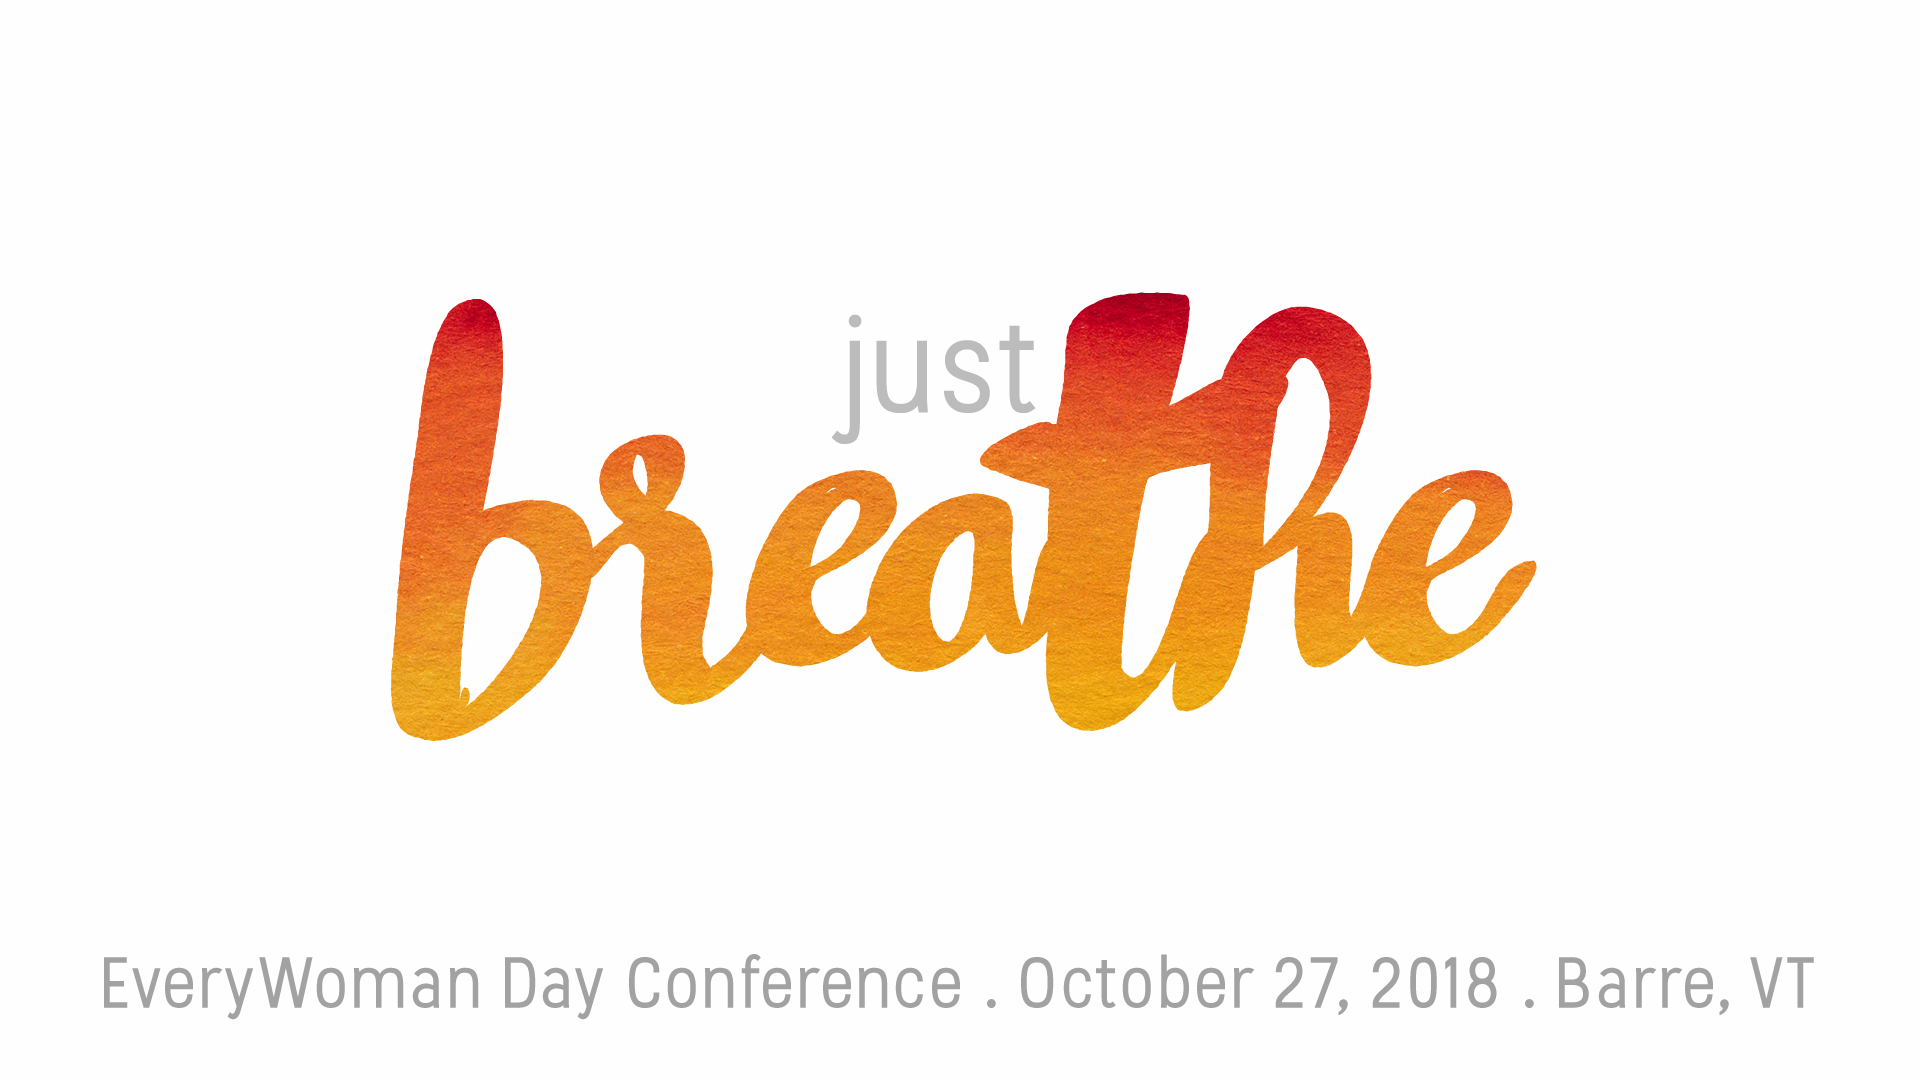 Ew day conference 2018